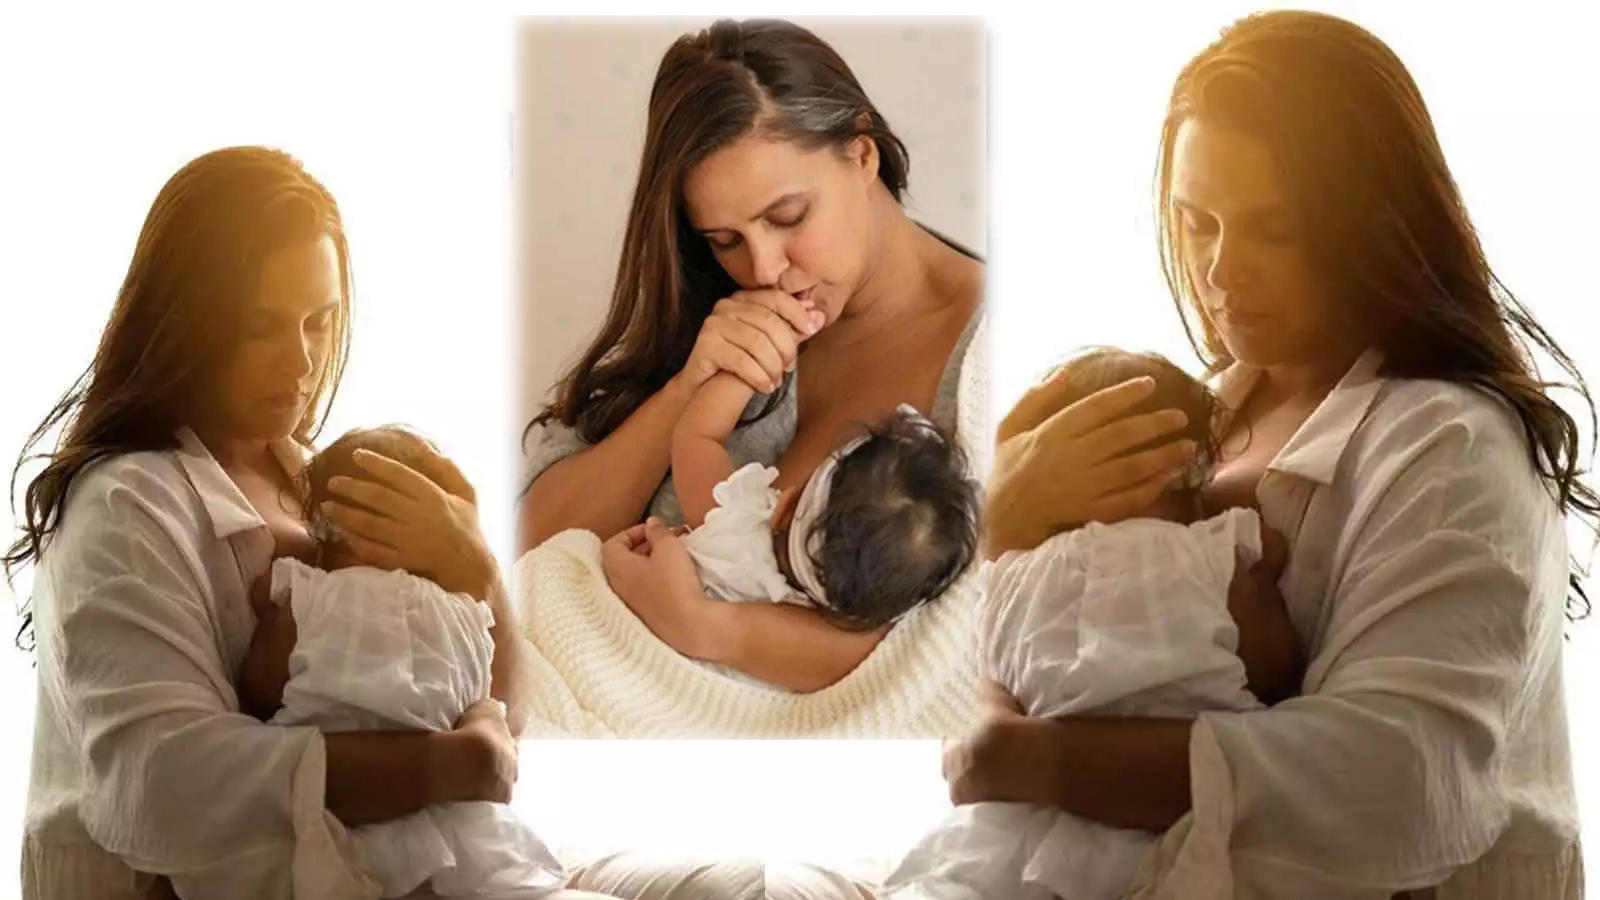 neha-dhupia-on-trolls-criticising-young-mothers-for-sharing-breastfeeding-pictures-how-dare-you-do-this-to-another-woman